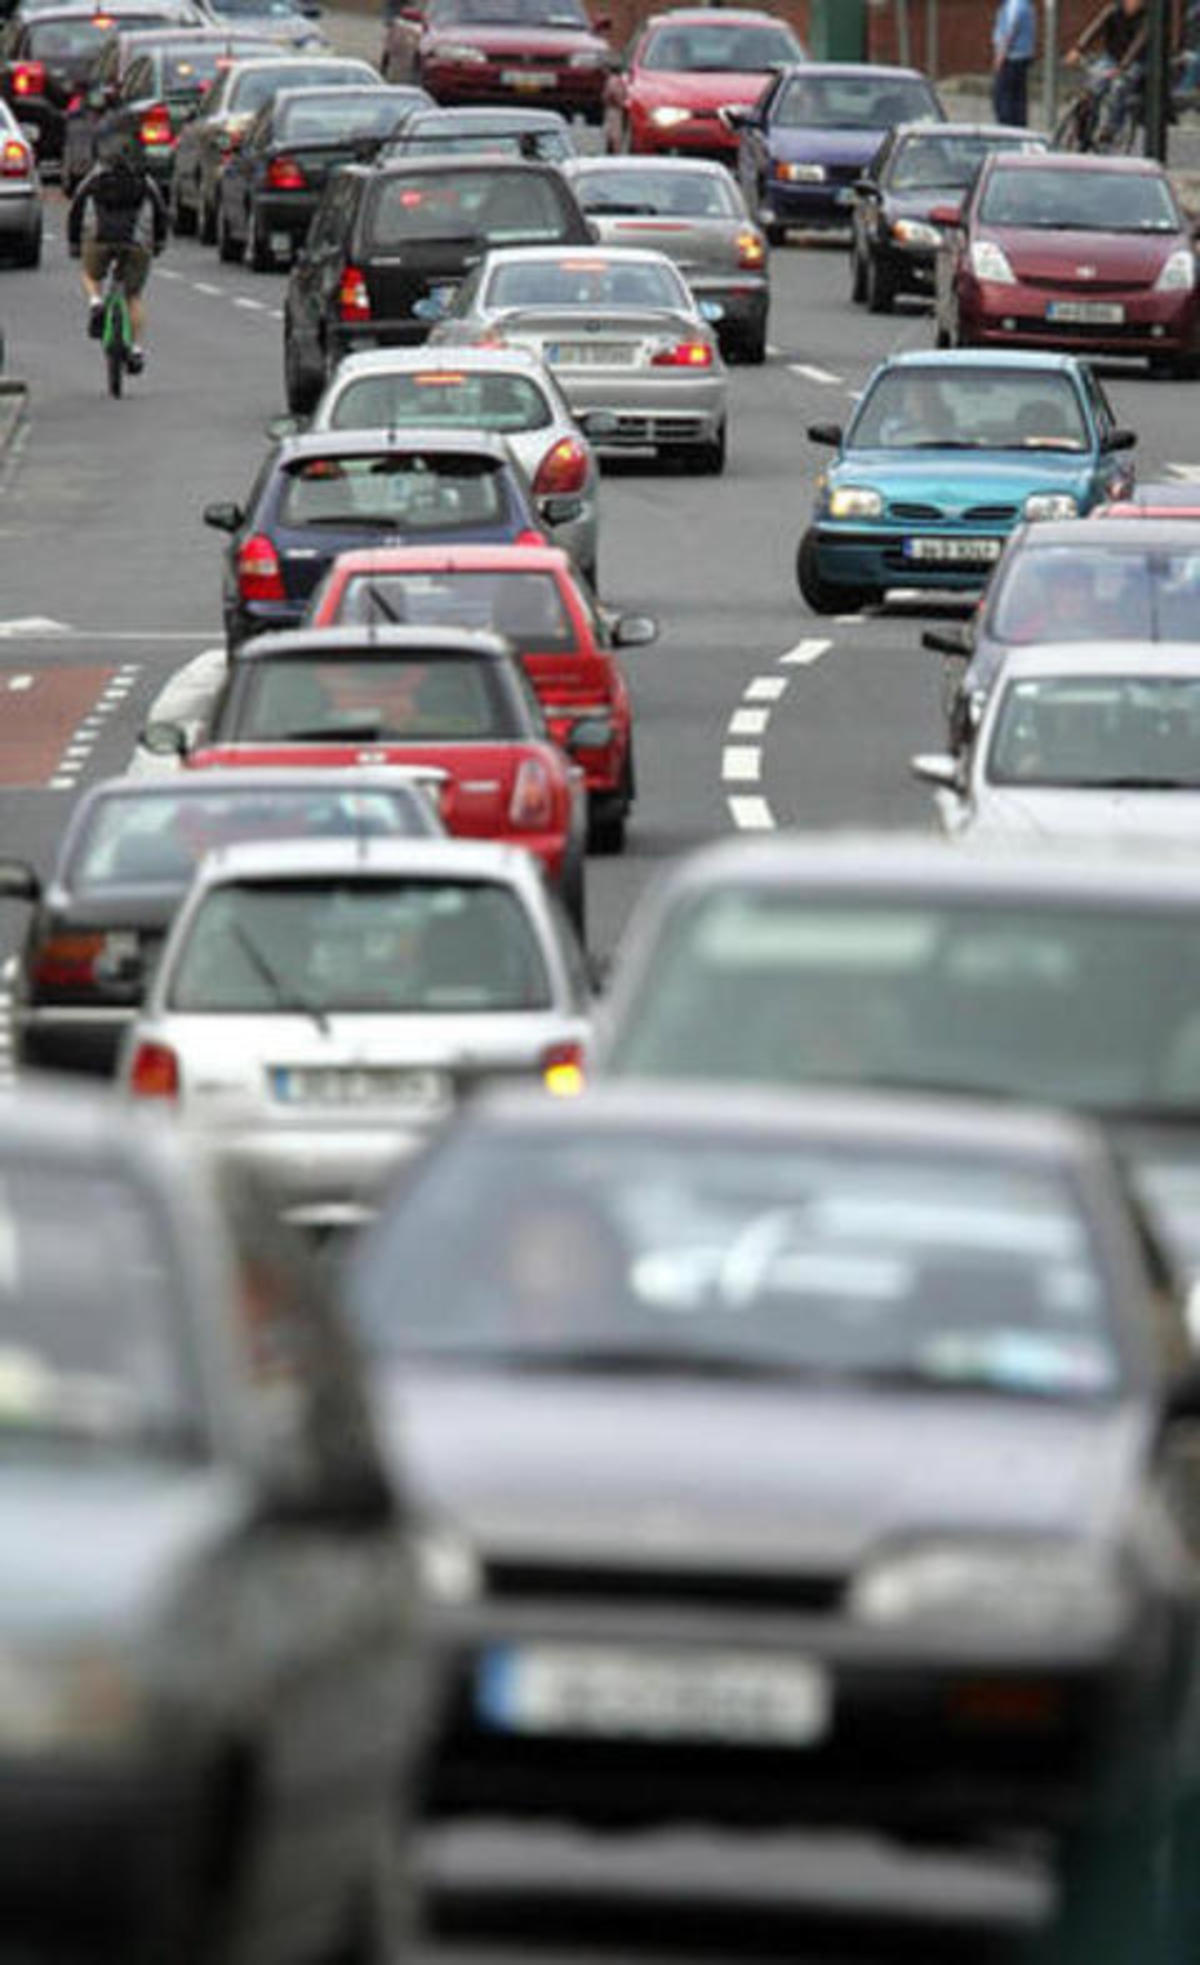 Stay safe on the roads, young people told